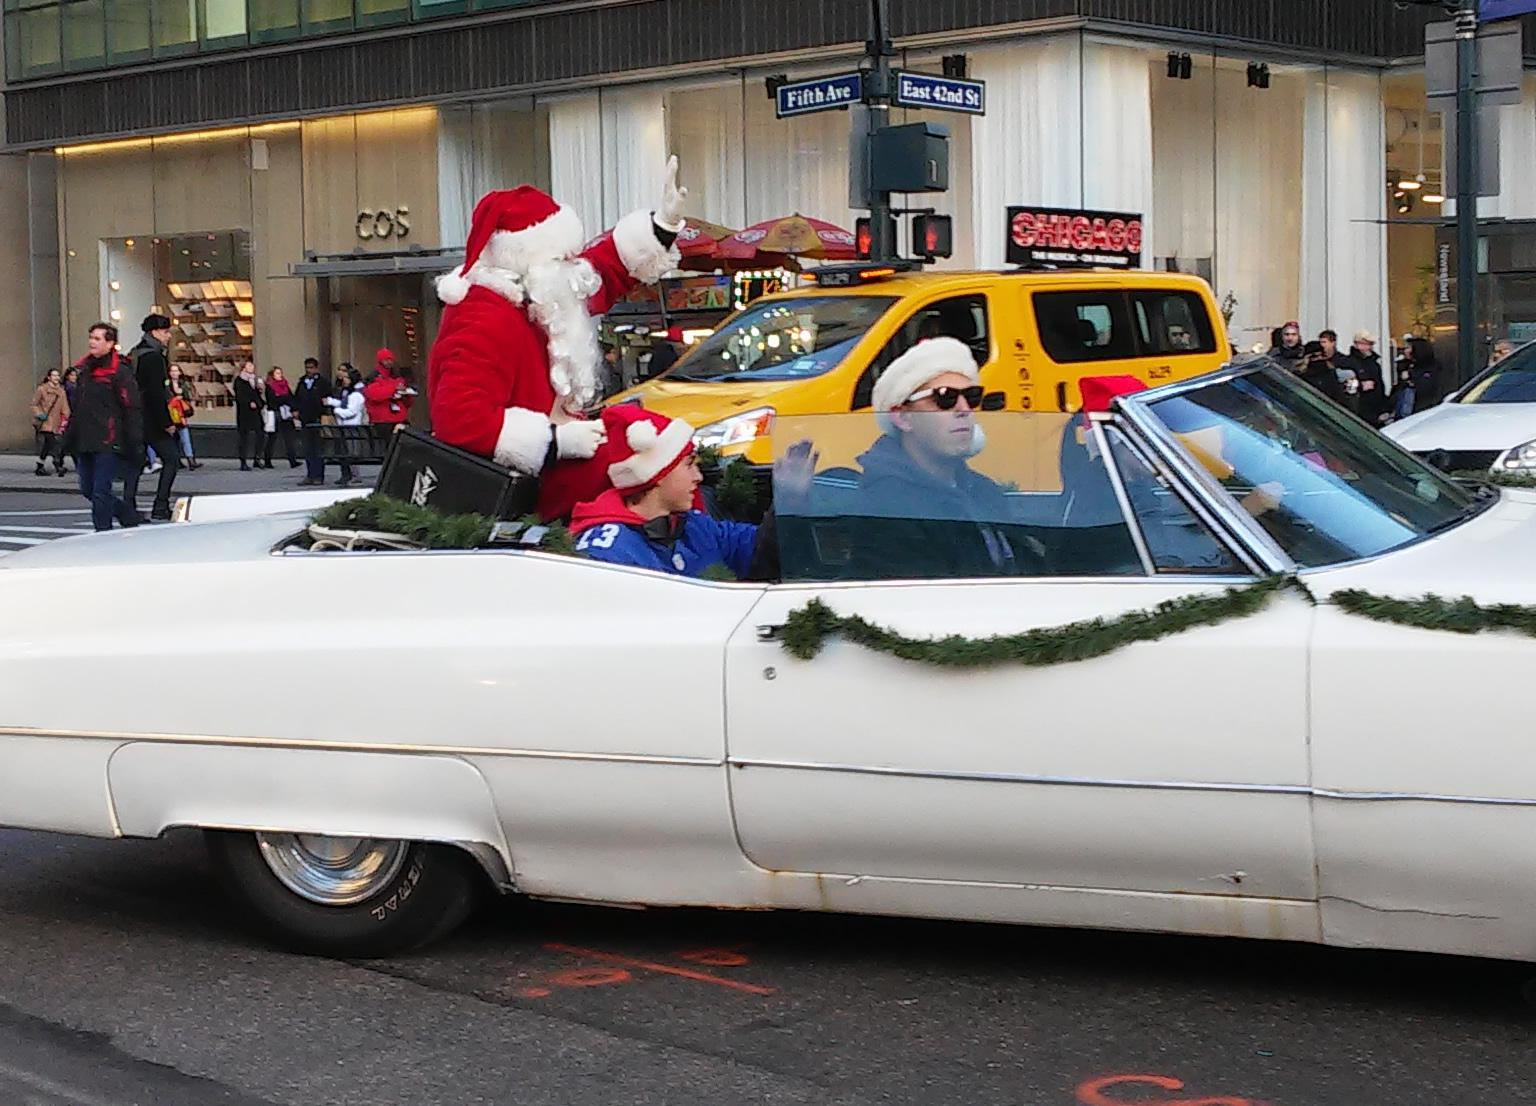 santaclause-white-caddy